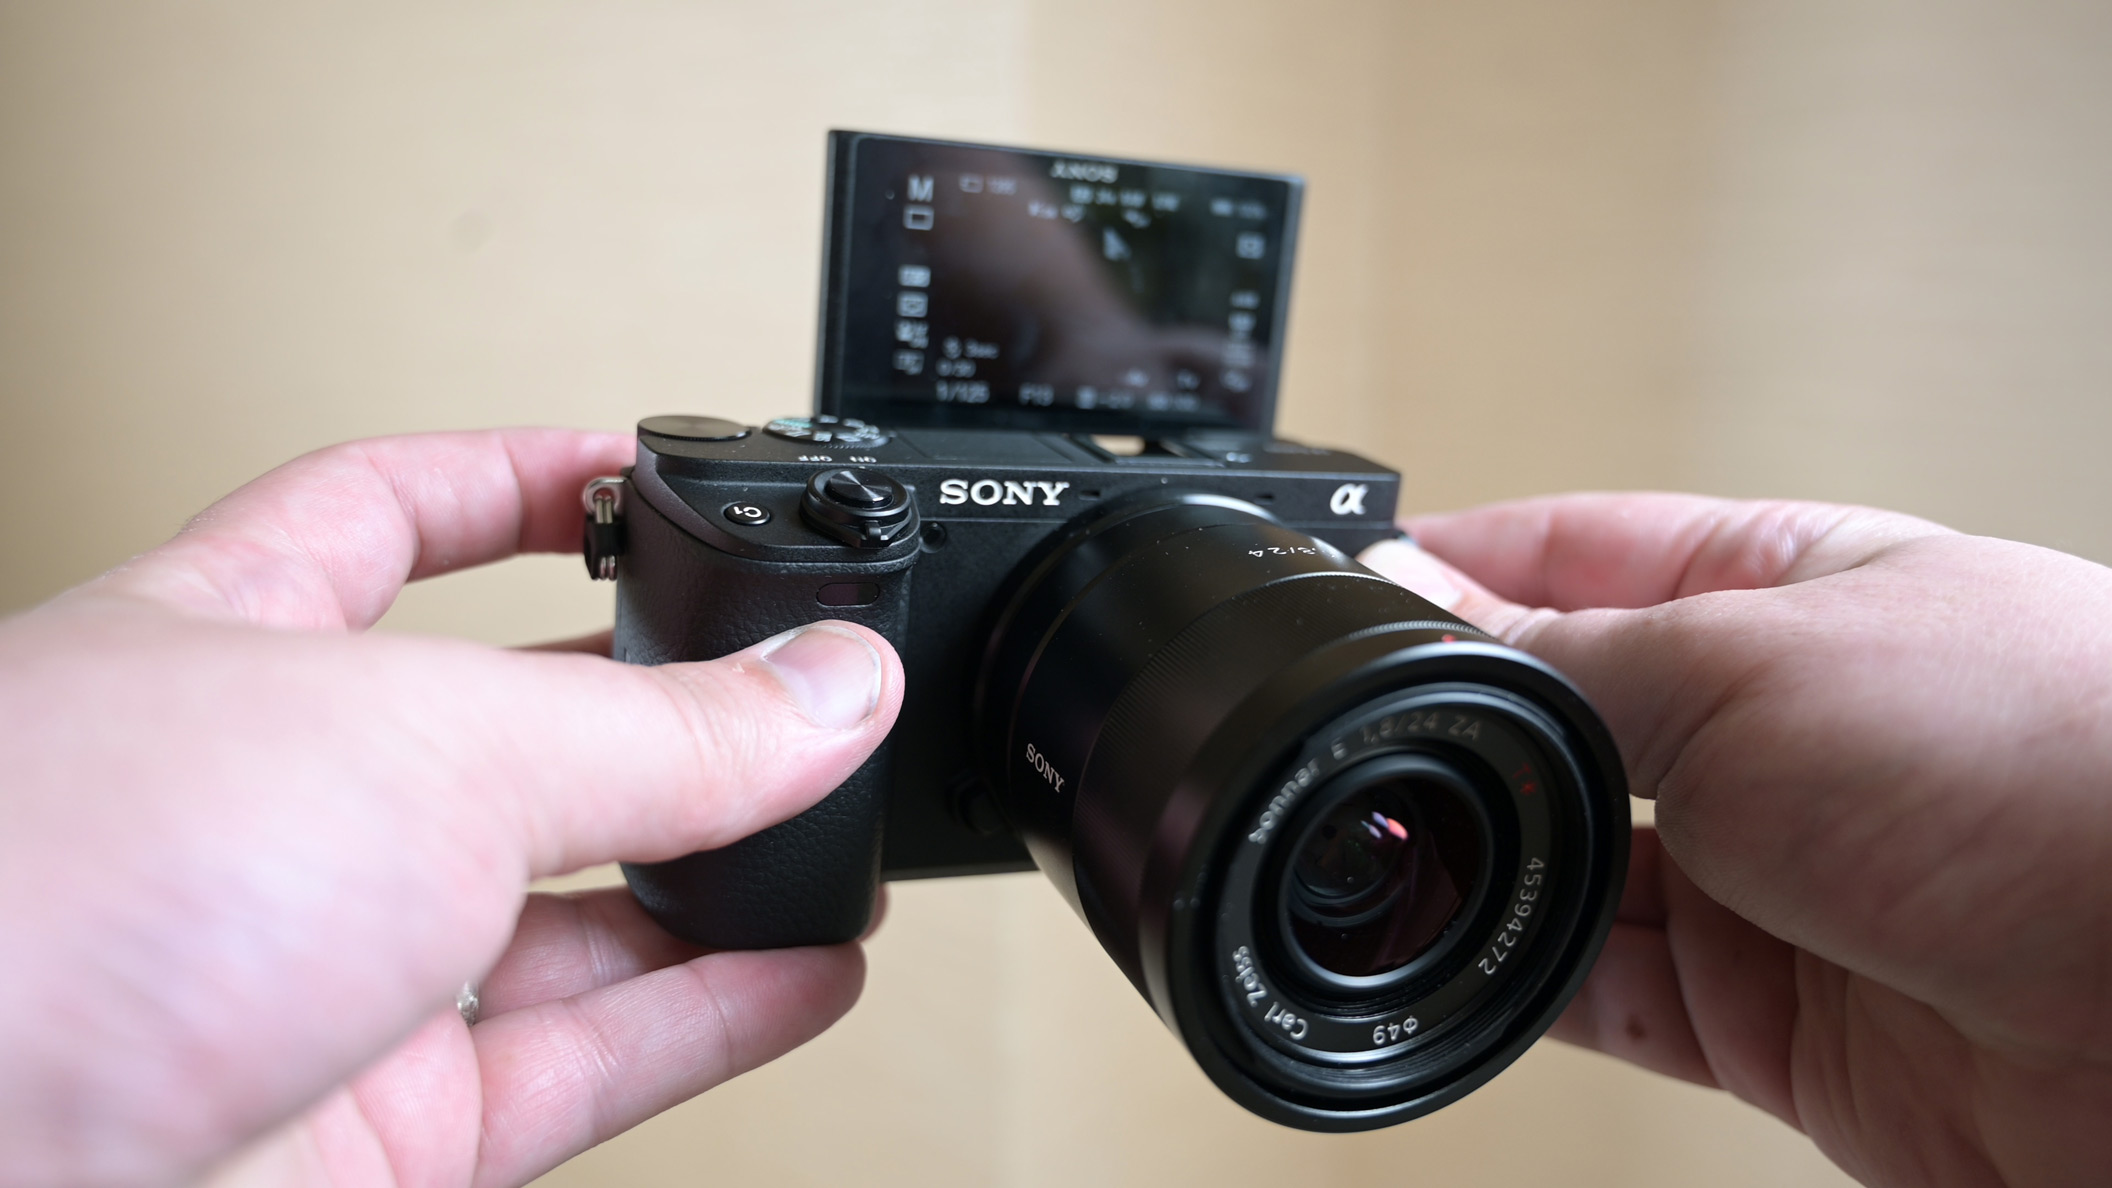 Sony a6400 hands-on review: Sony ditches record limit and